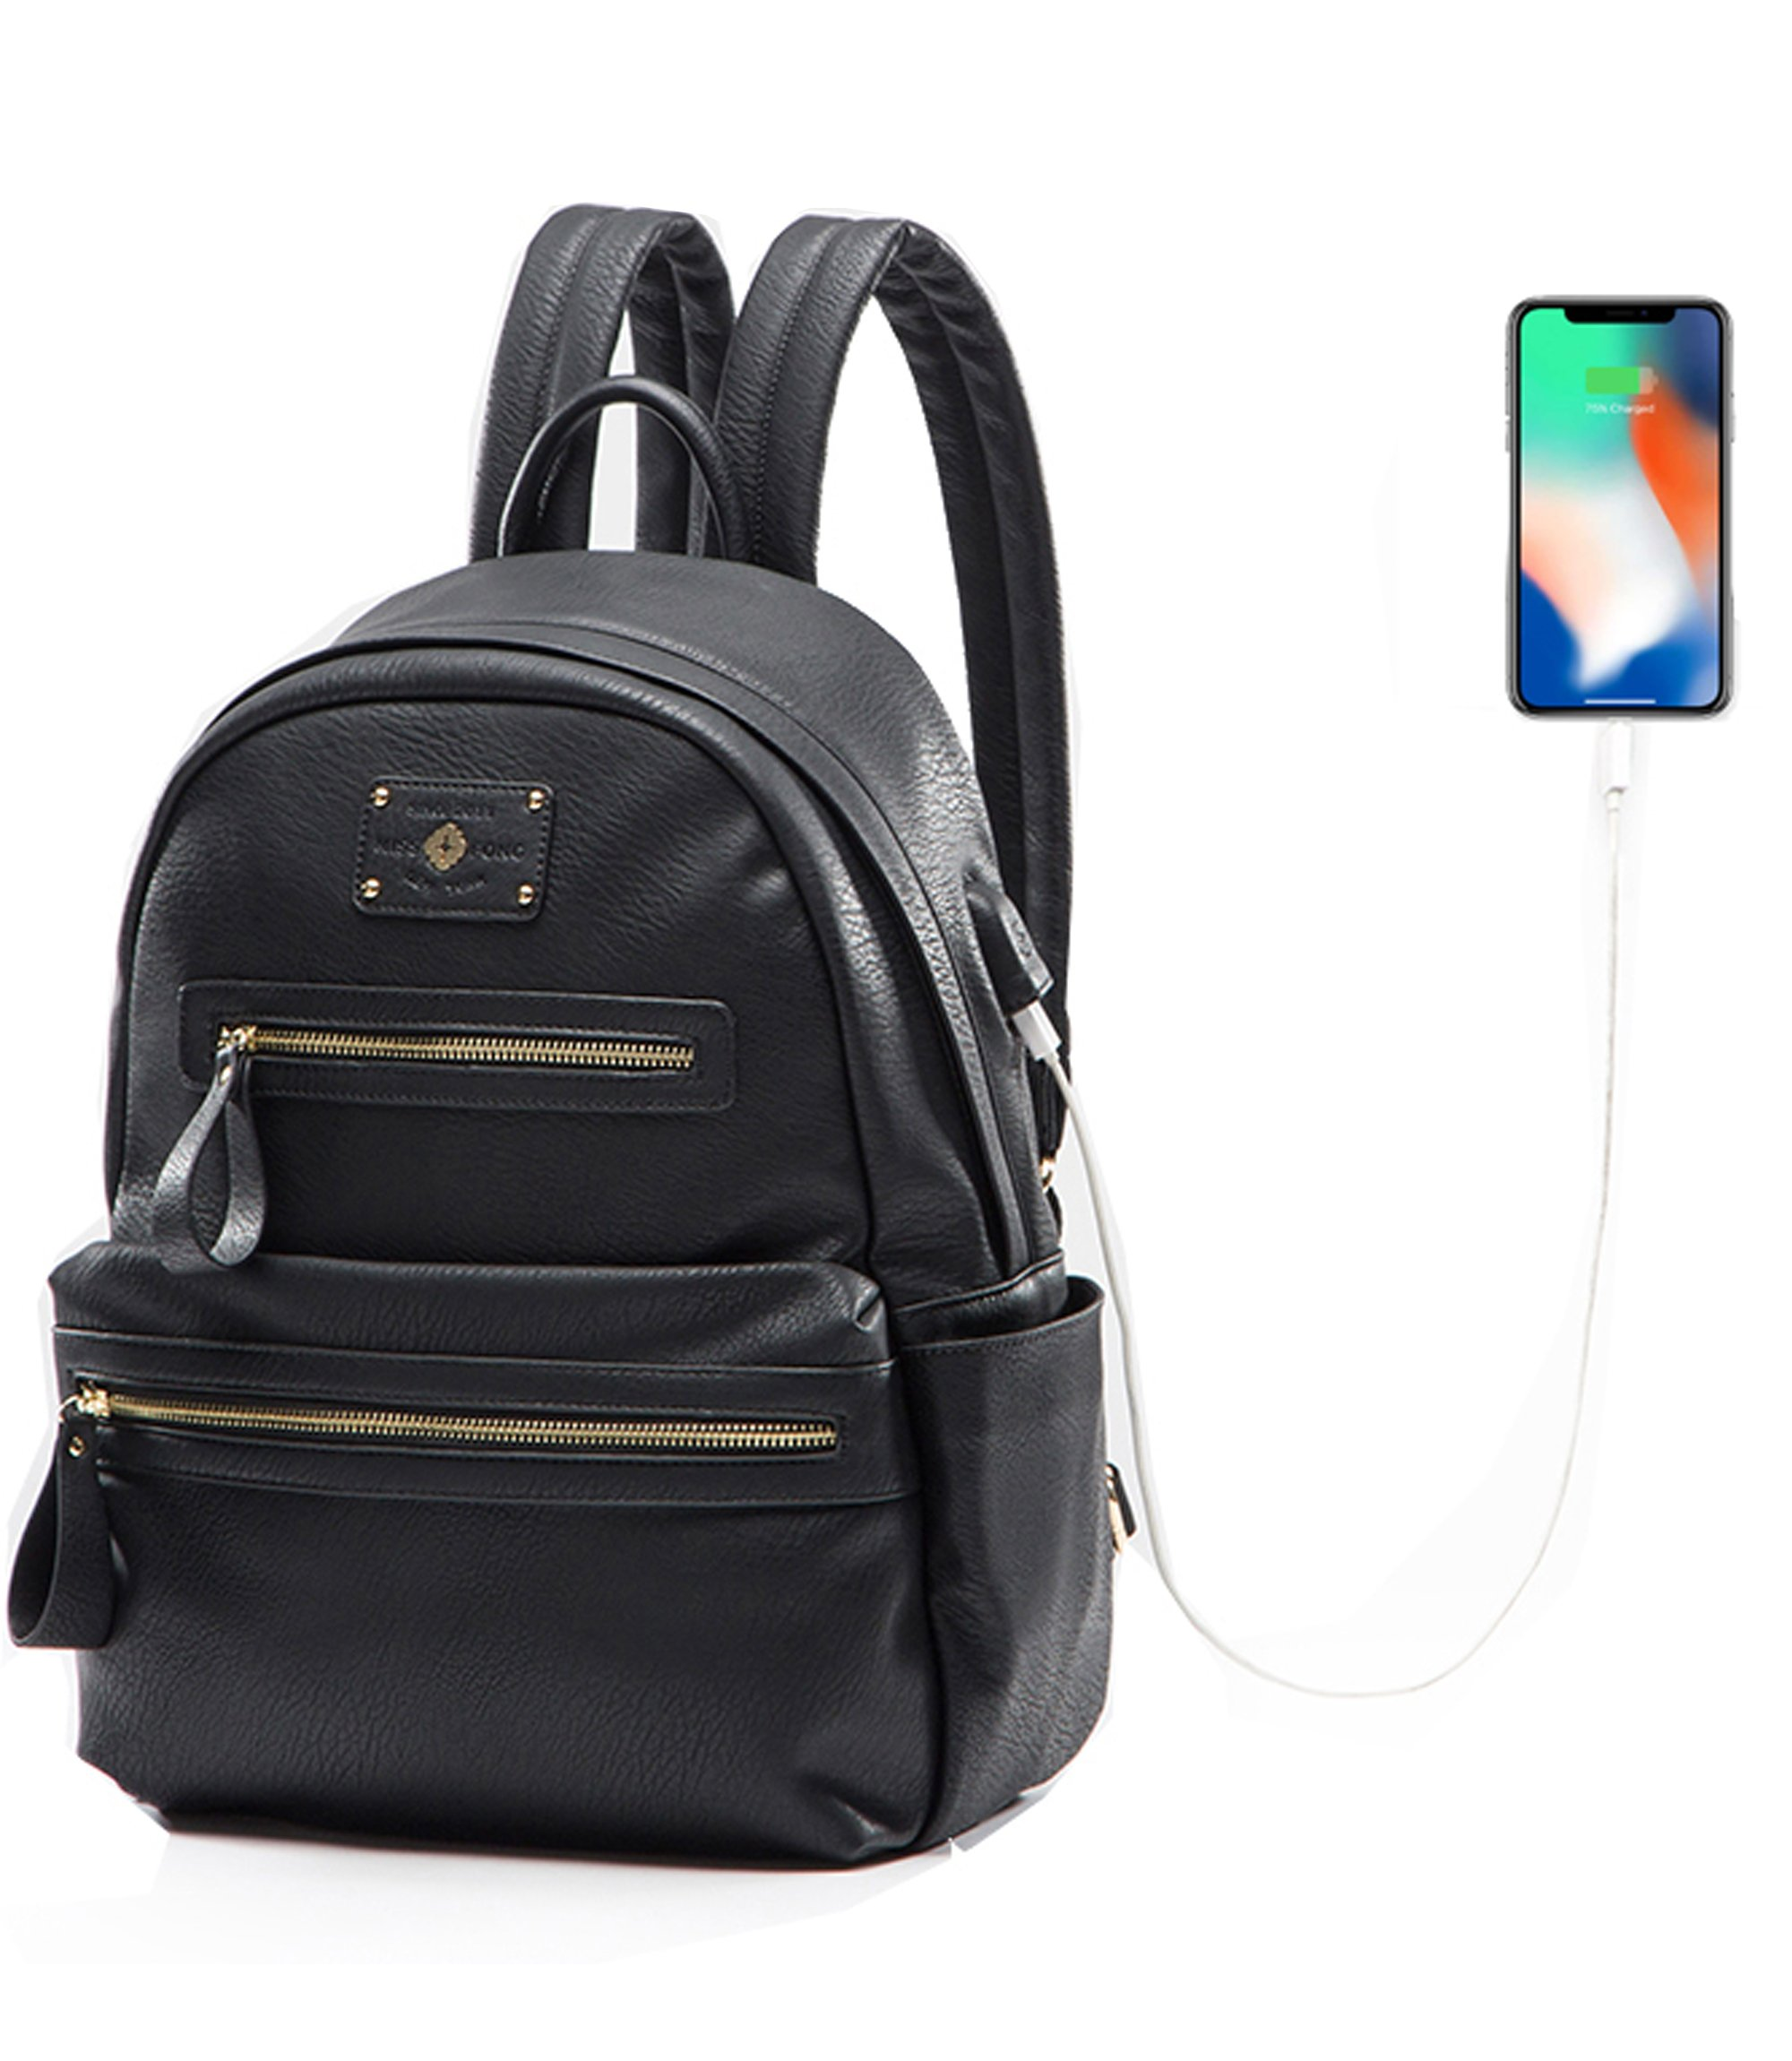 Leather Backpack Women Miss Fong,Womens Backpack School Backpack USB Charger,Fits 13 inch, 14 inch Laptop(Black)